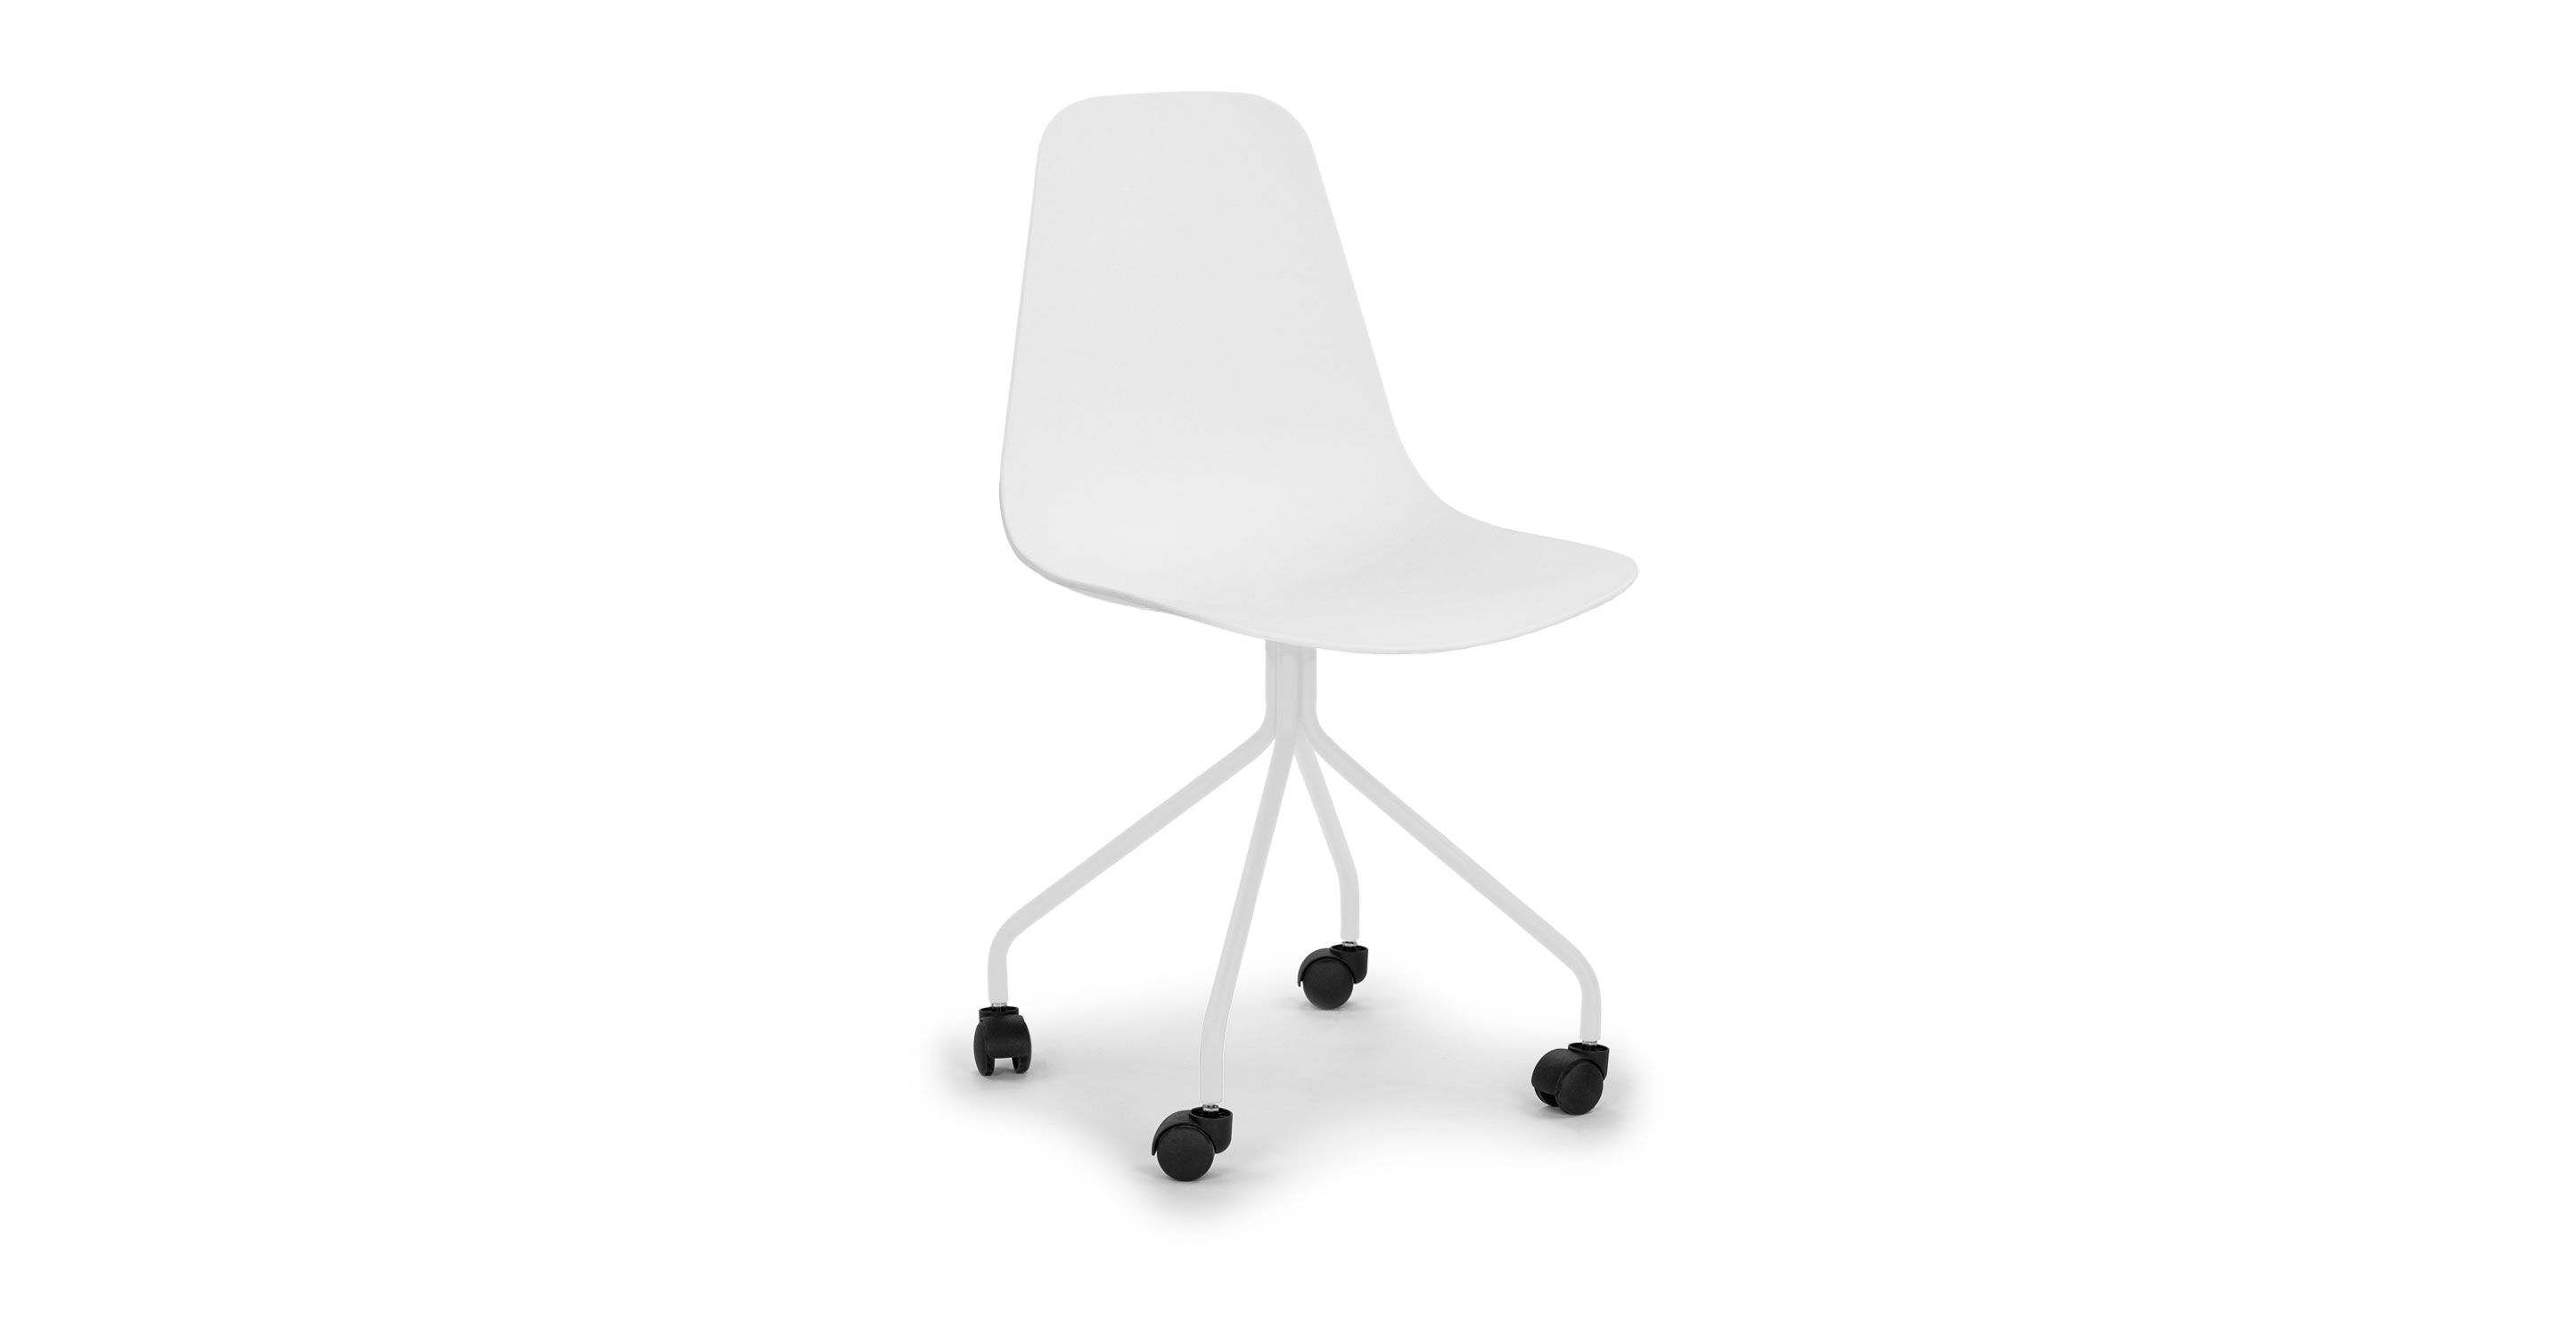 Svelti Pure White Office Chair Chairs Article Modern Mid Century And Scandi Modern Office Chair Mid Century Modern Office Chair Mid Century Modern Chair